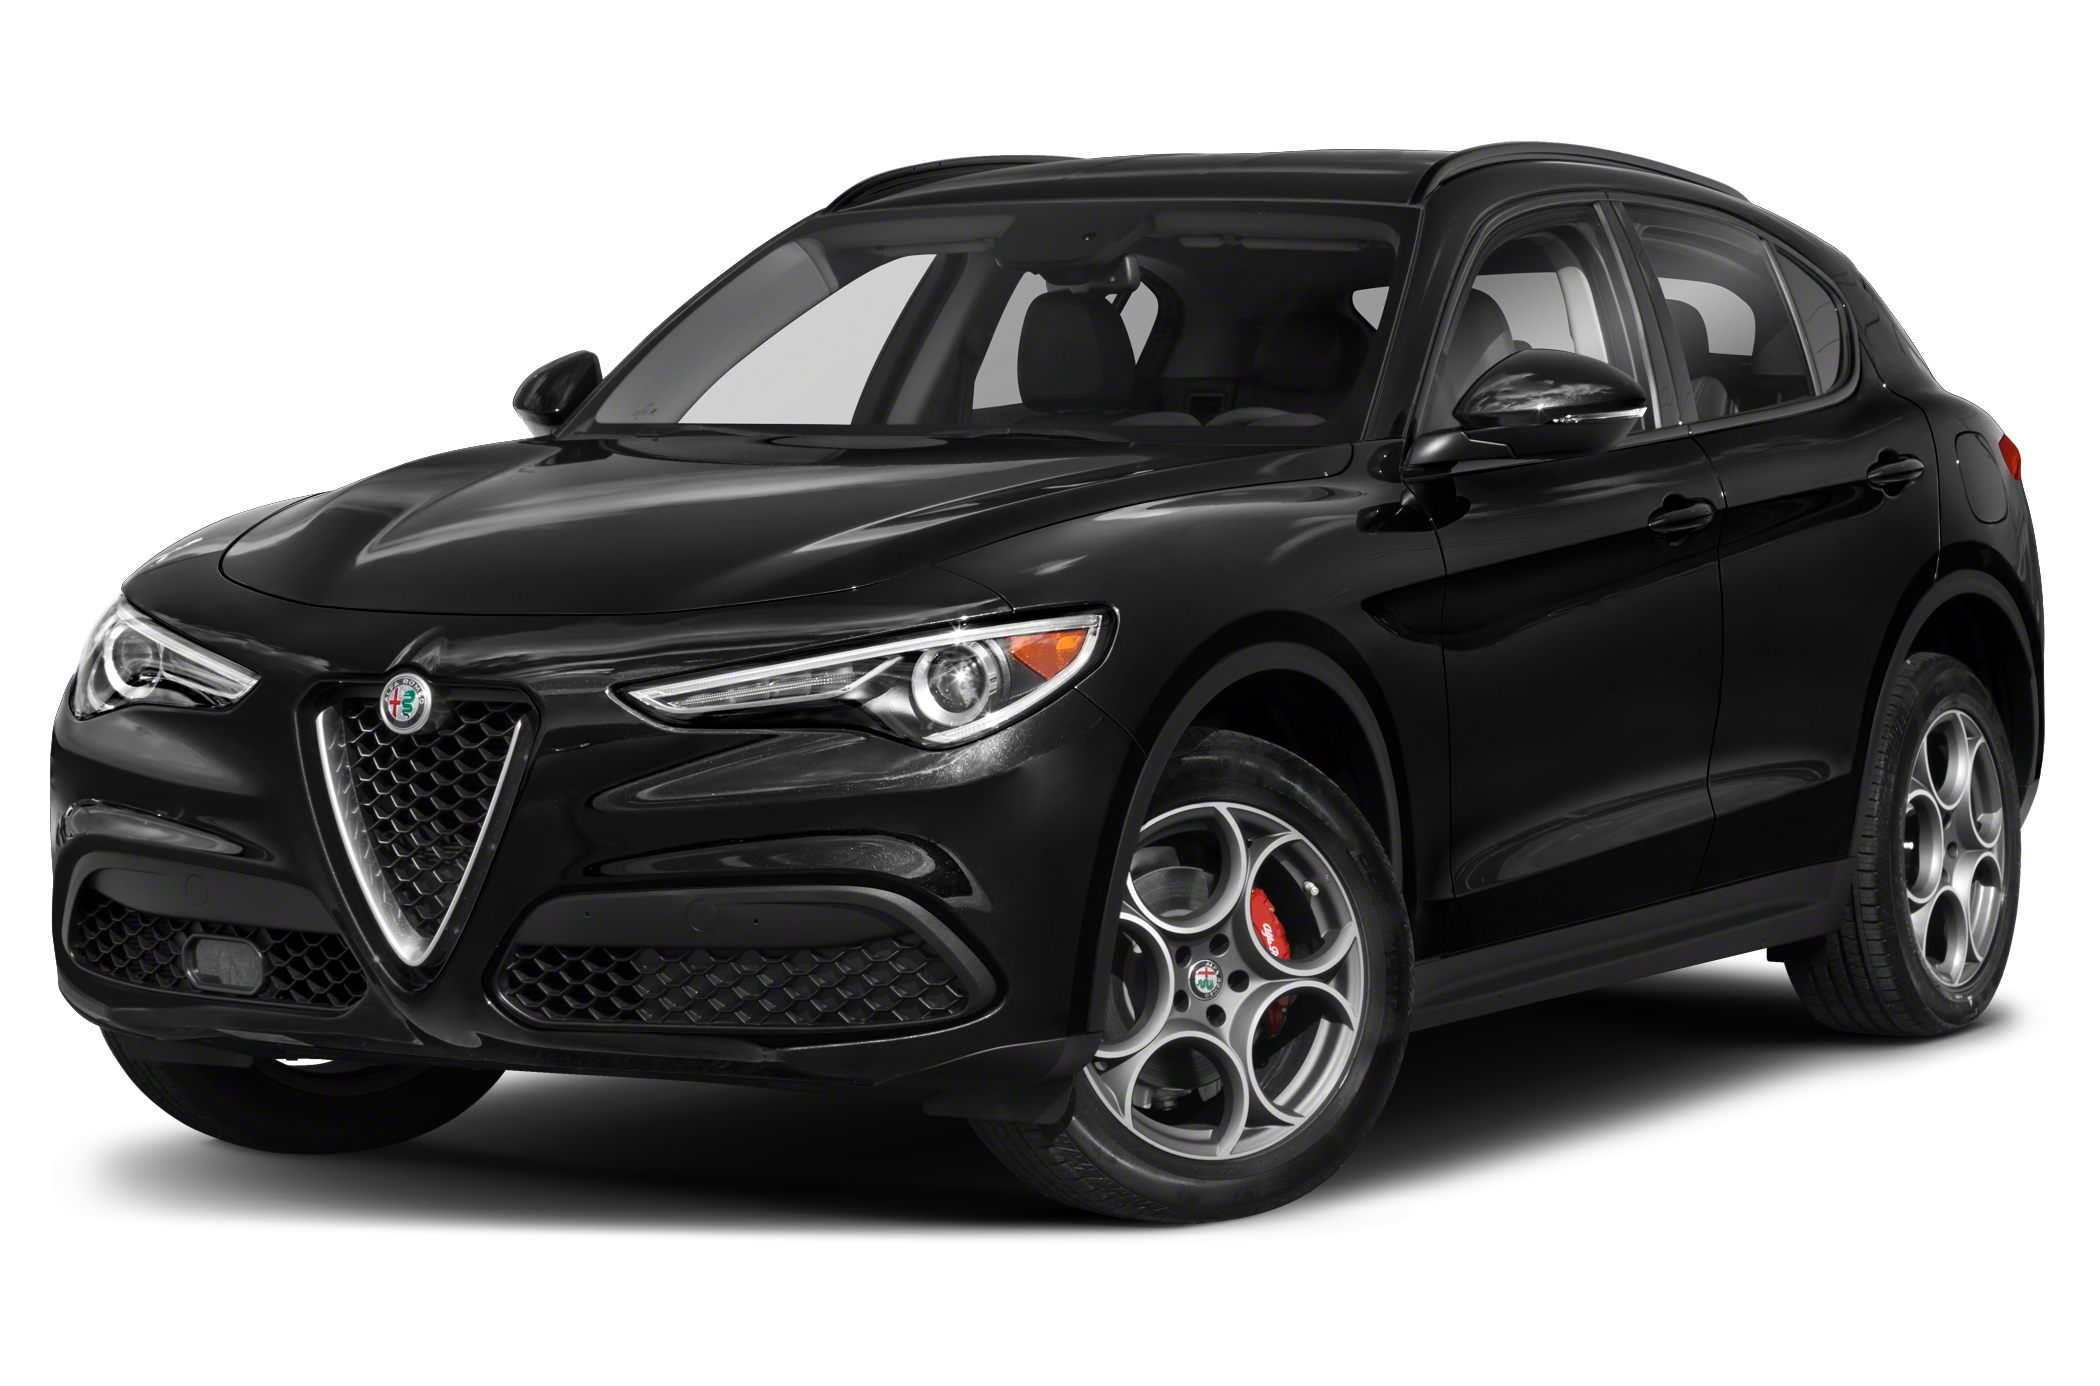 2019 Alfa Romeo Stelvio Deals Prices Incentives Leases Overview